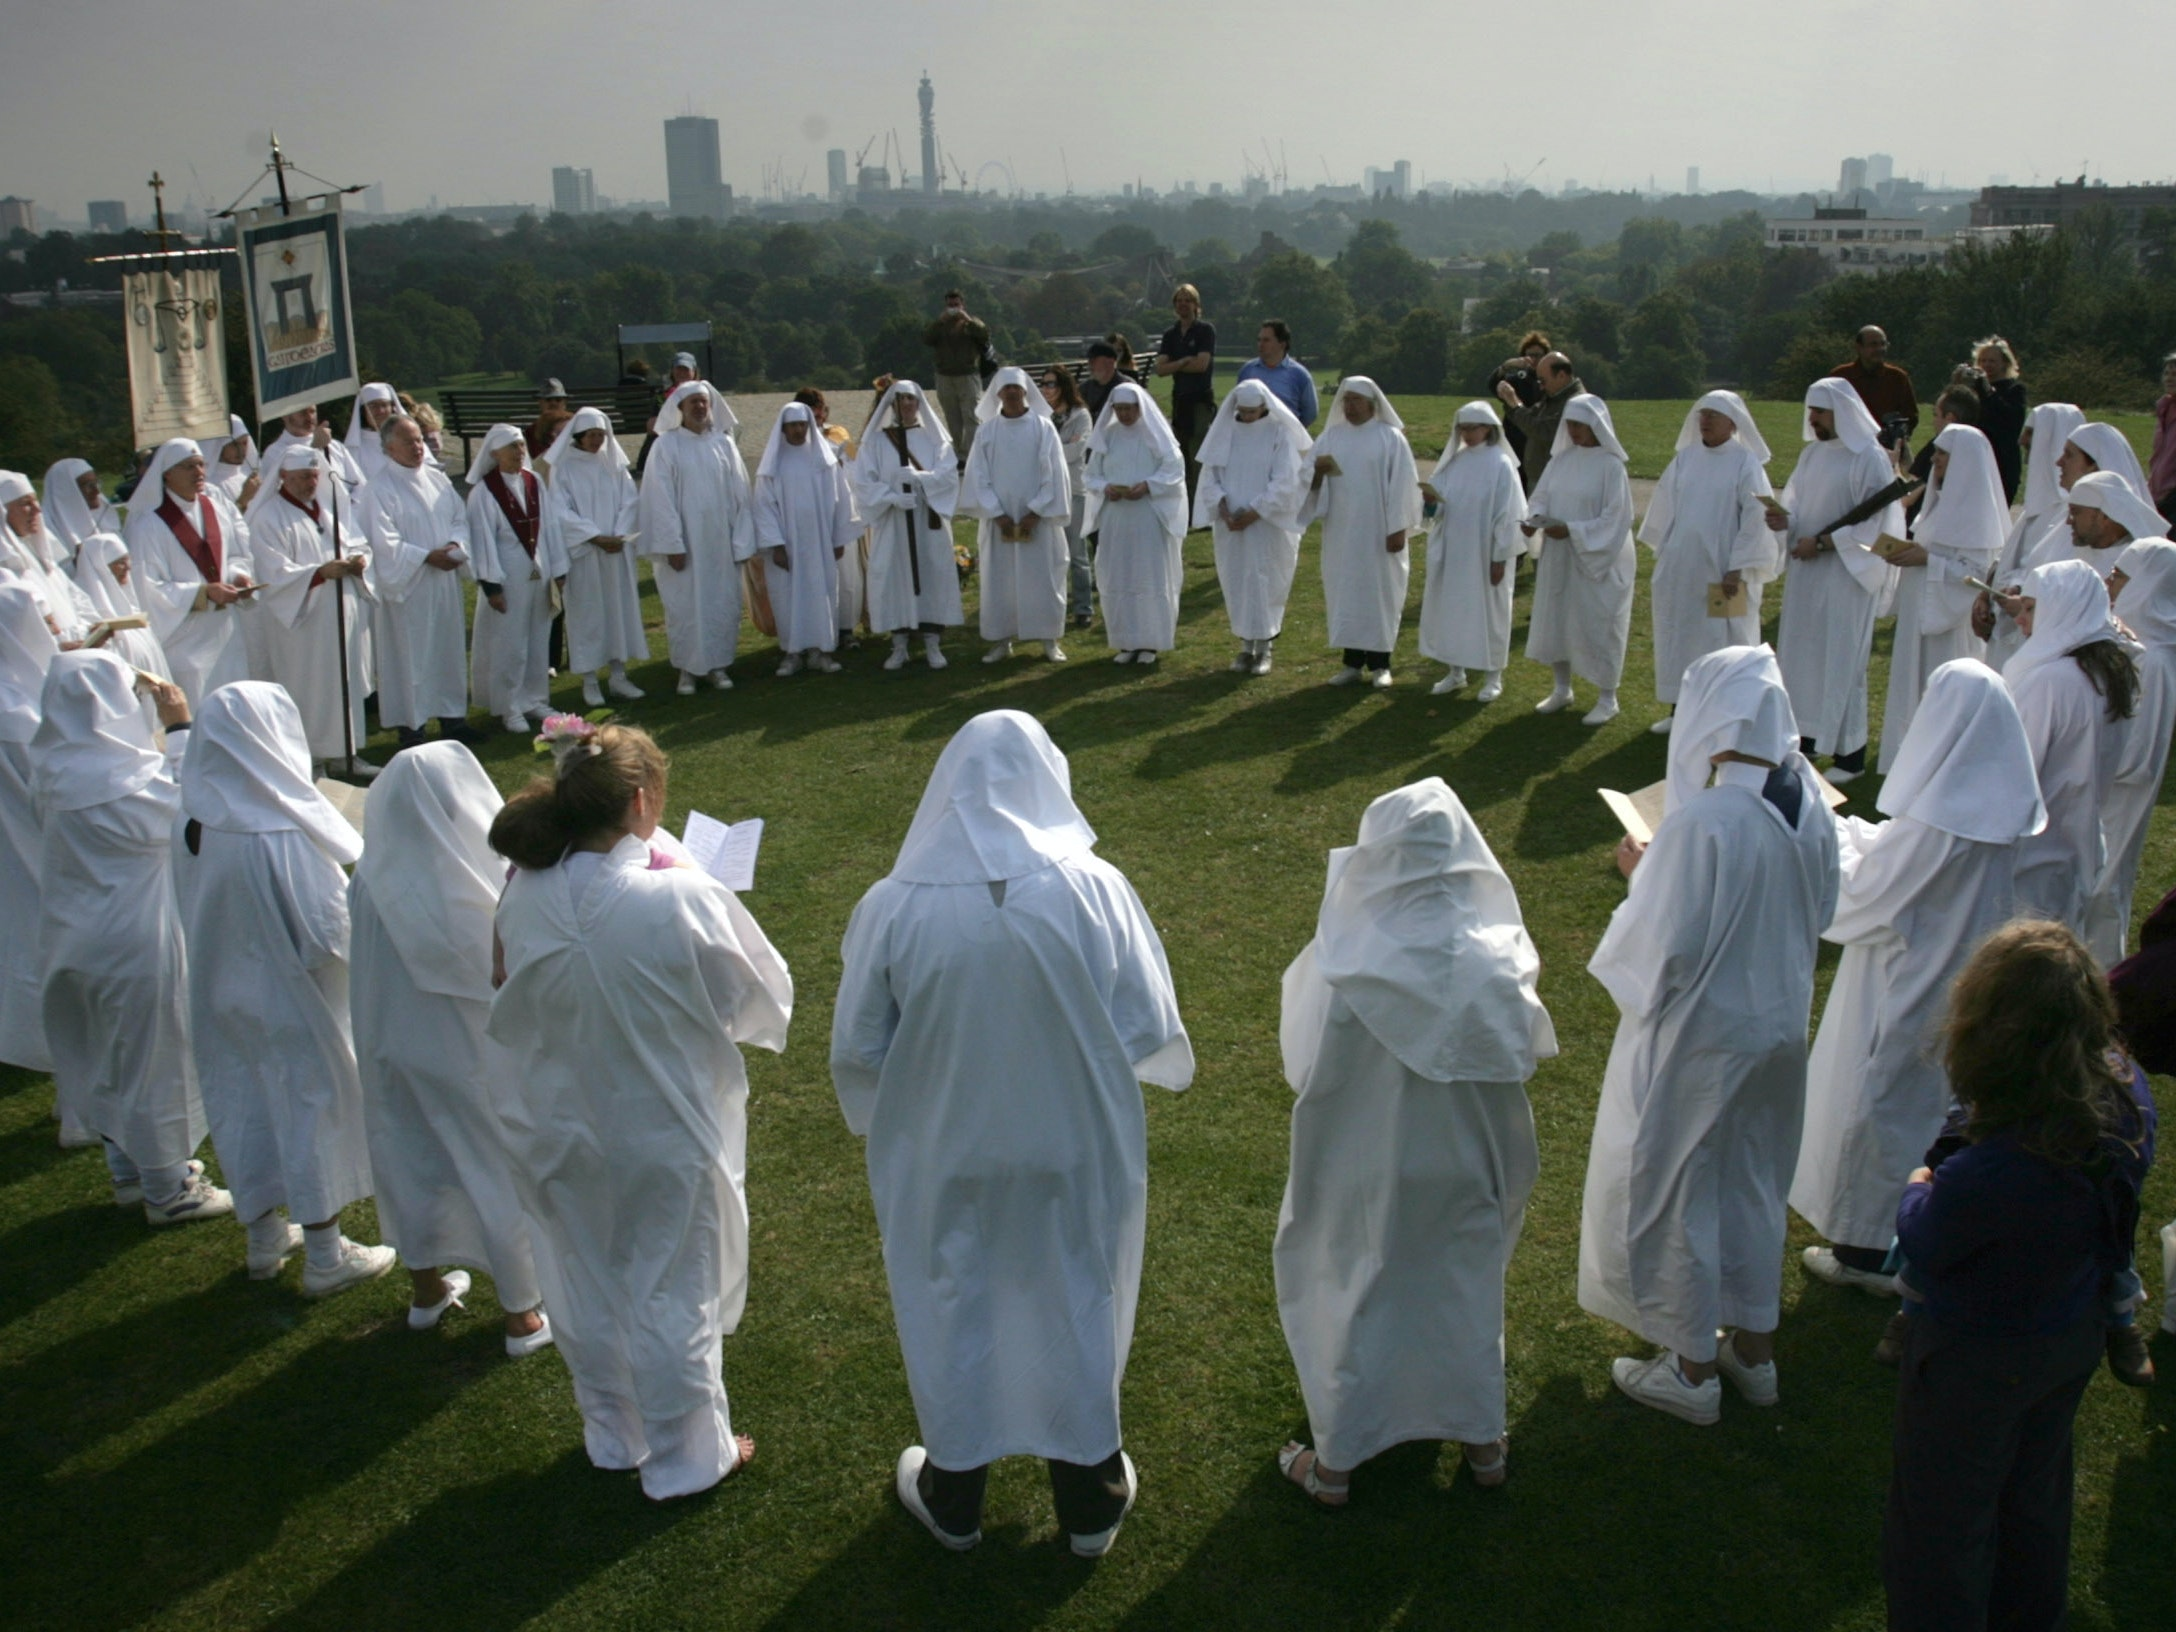 LONDON - SEPTEMBER 22:  Members of The Druid Order of London conduct a ceremony on Primrose Hill to celebrate the Autumn Equinox on September 22, 2008 in London, England. The Druid Order of London, which was founded in Oxford in 1245 has been conducting the Autumn Equinox ceremony (which celebrates the harvest and the calender day that has equal amounts of night and day) on Primrose Hill since 1717.  (Photo by Matt Cardy/Getty Images)